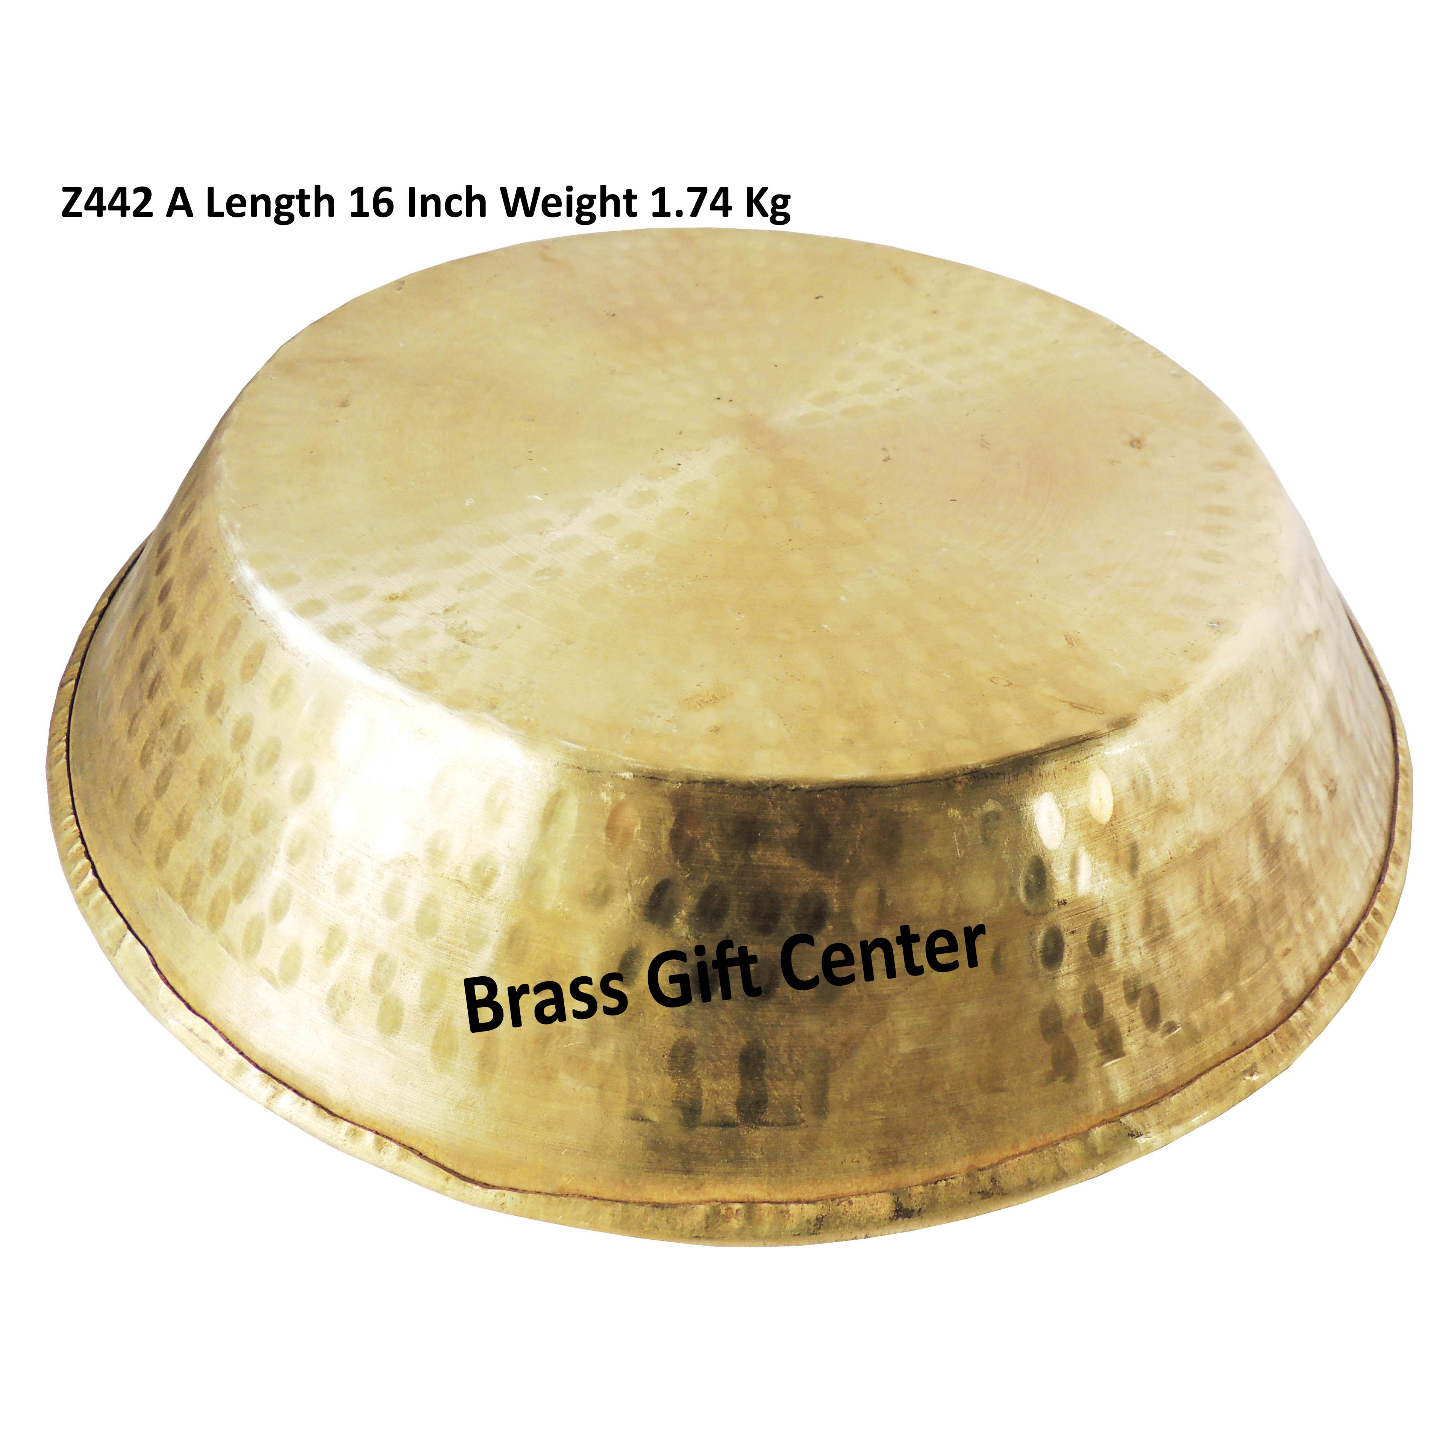 Brass Thaal With Brass Finish Diameter 16 Inch (Z442 A)